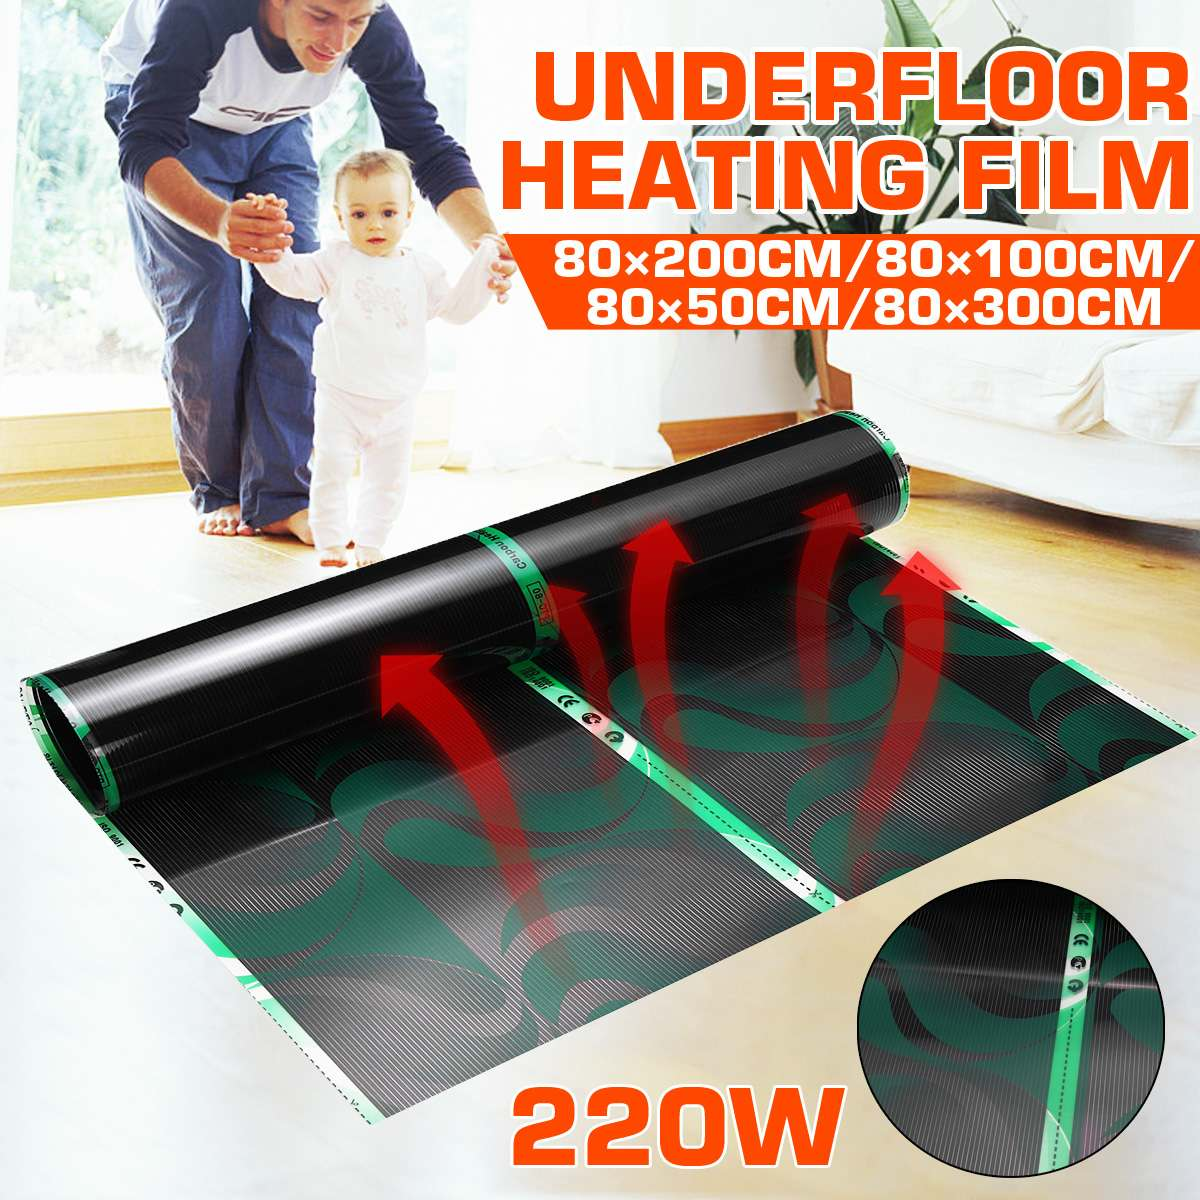 80cm Electric Heating Film Infrared Underfloor Foil Warming Mat 220V 220W Floor Heating Systems & Parts Living Room Warm Mat